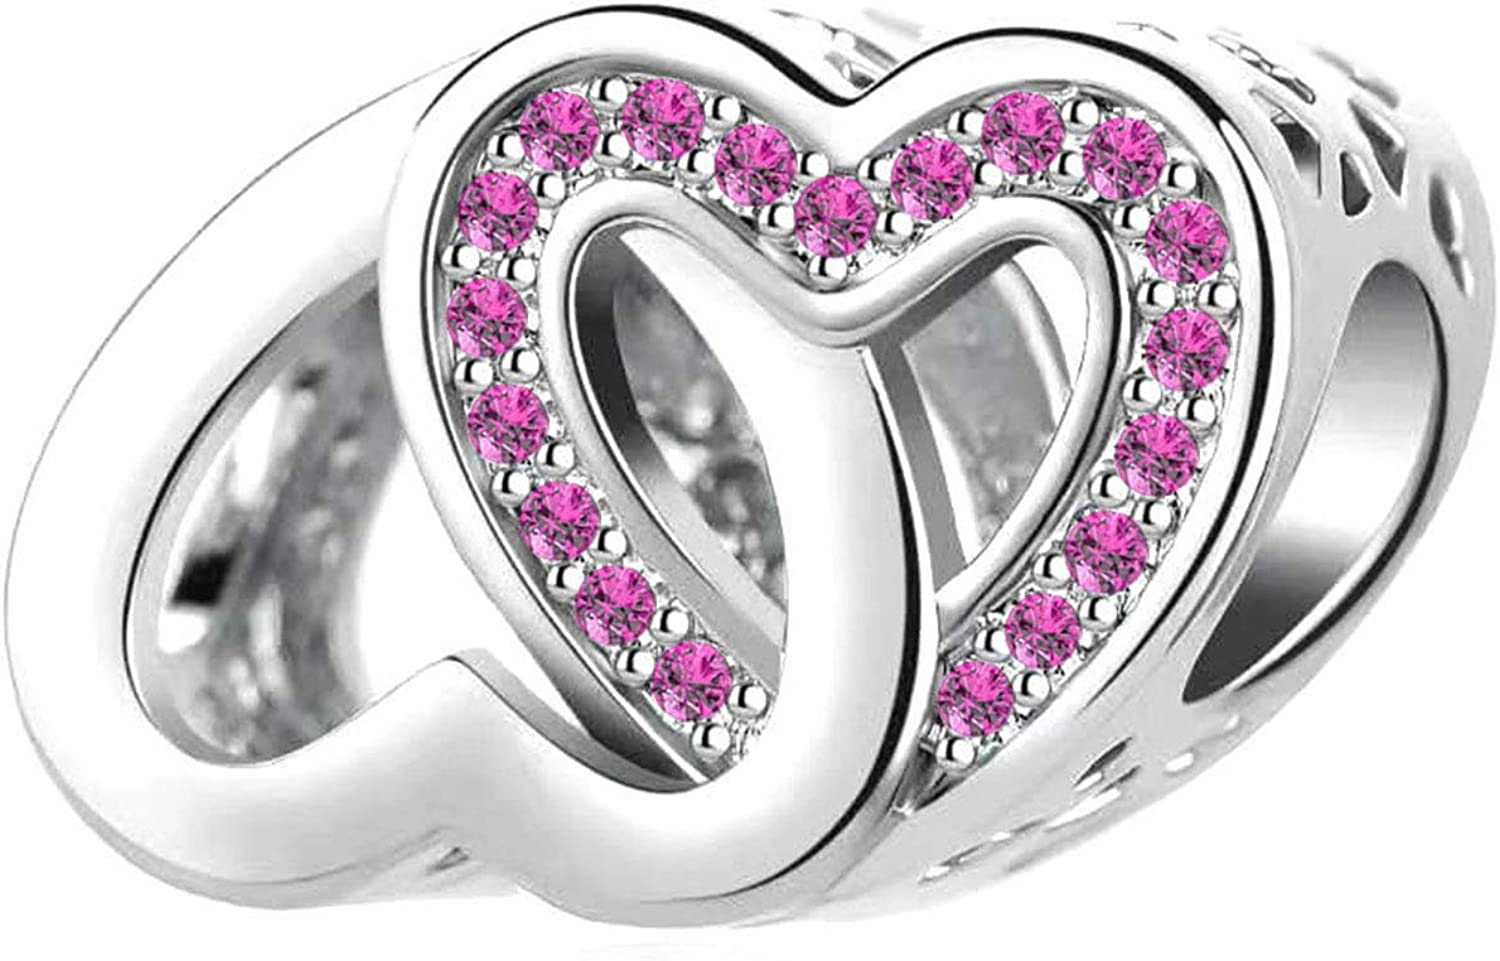 DWJSu Entwined Hearts Birthstone Crystal Heart Charm for Charms Bracelets Cheap Necklace For Women Gift